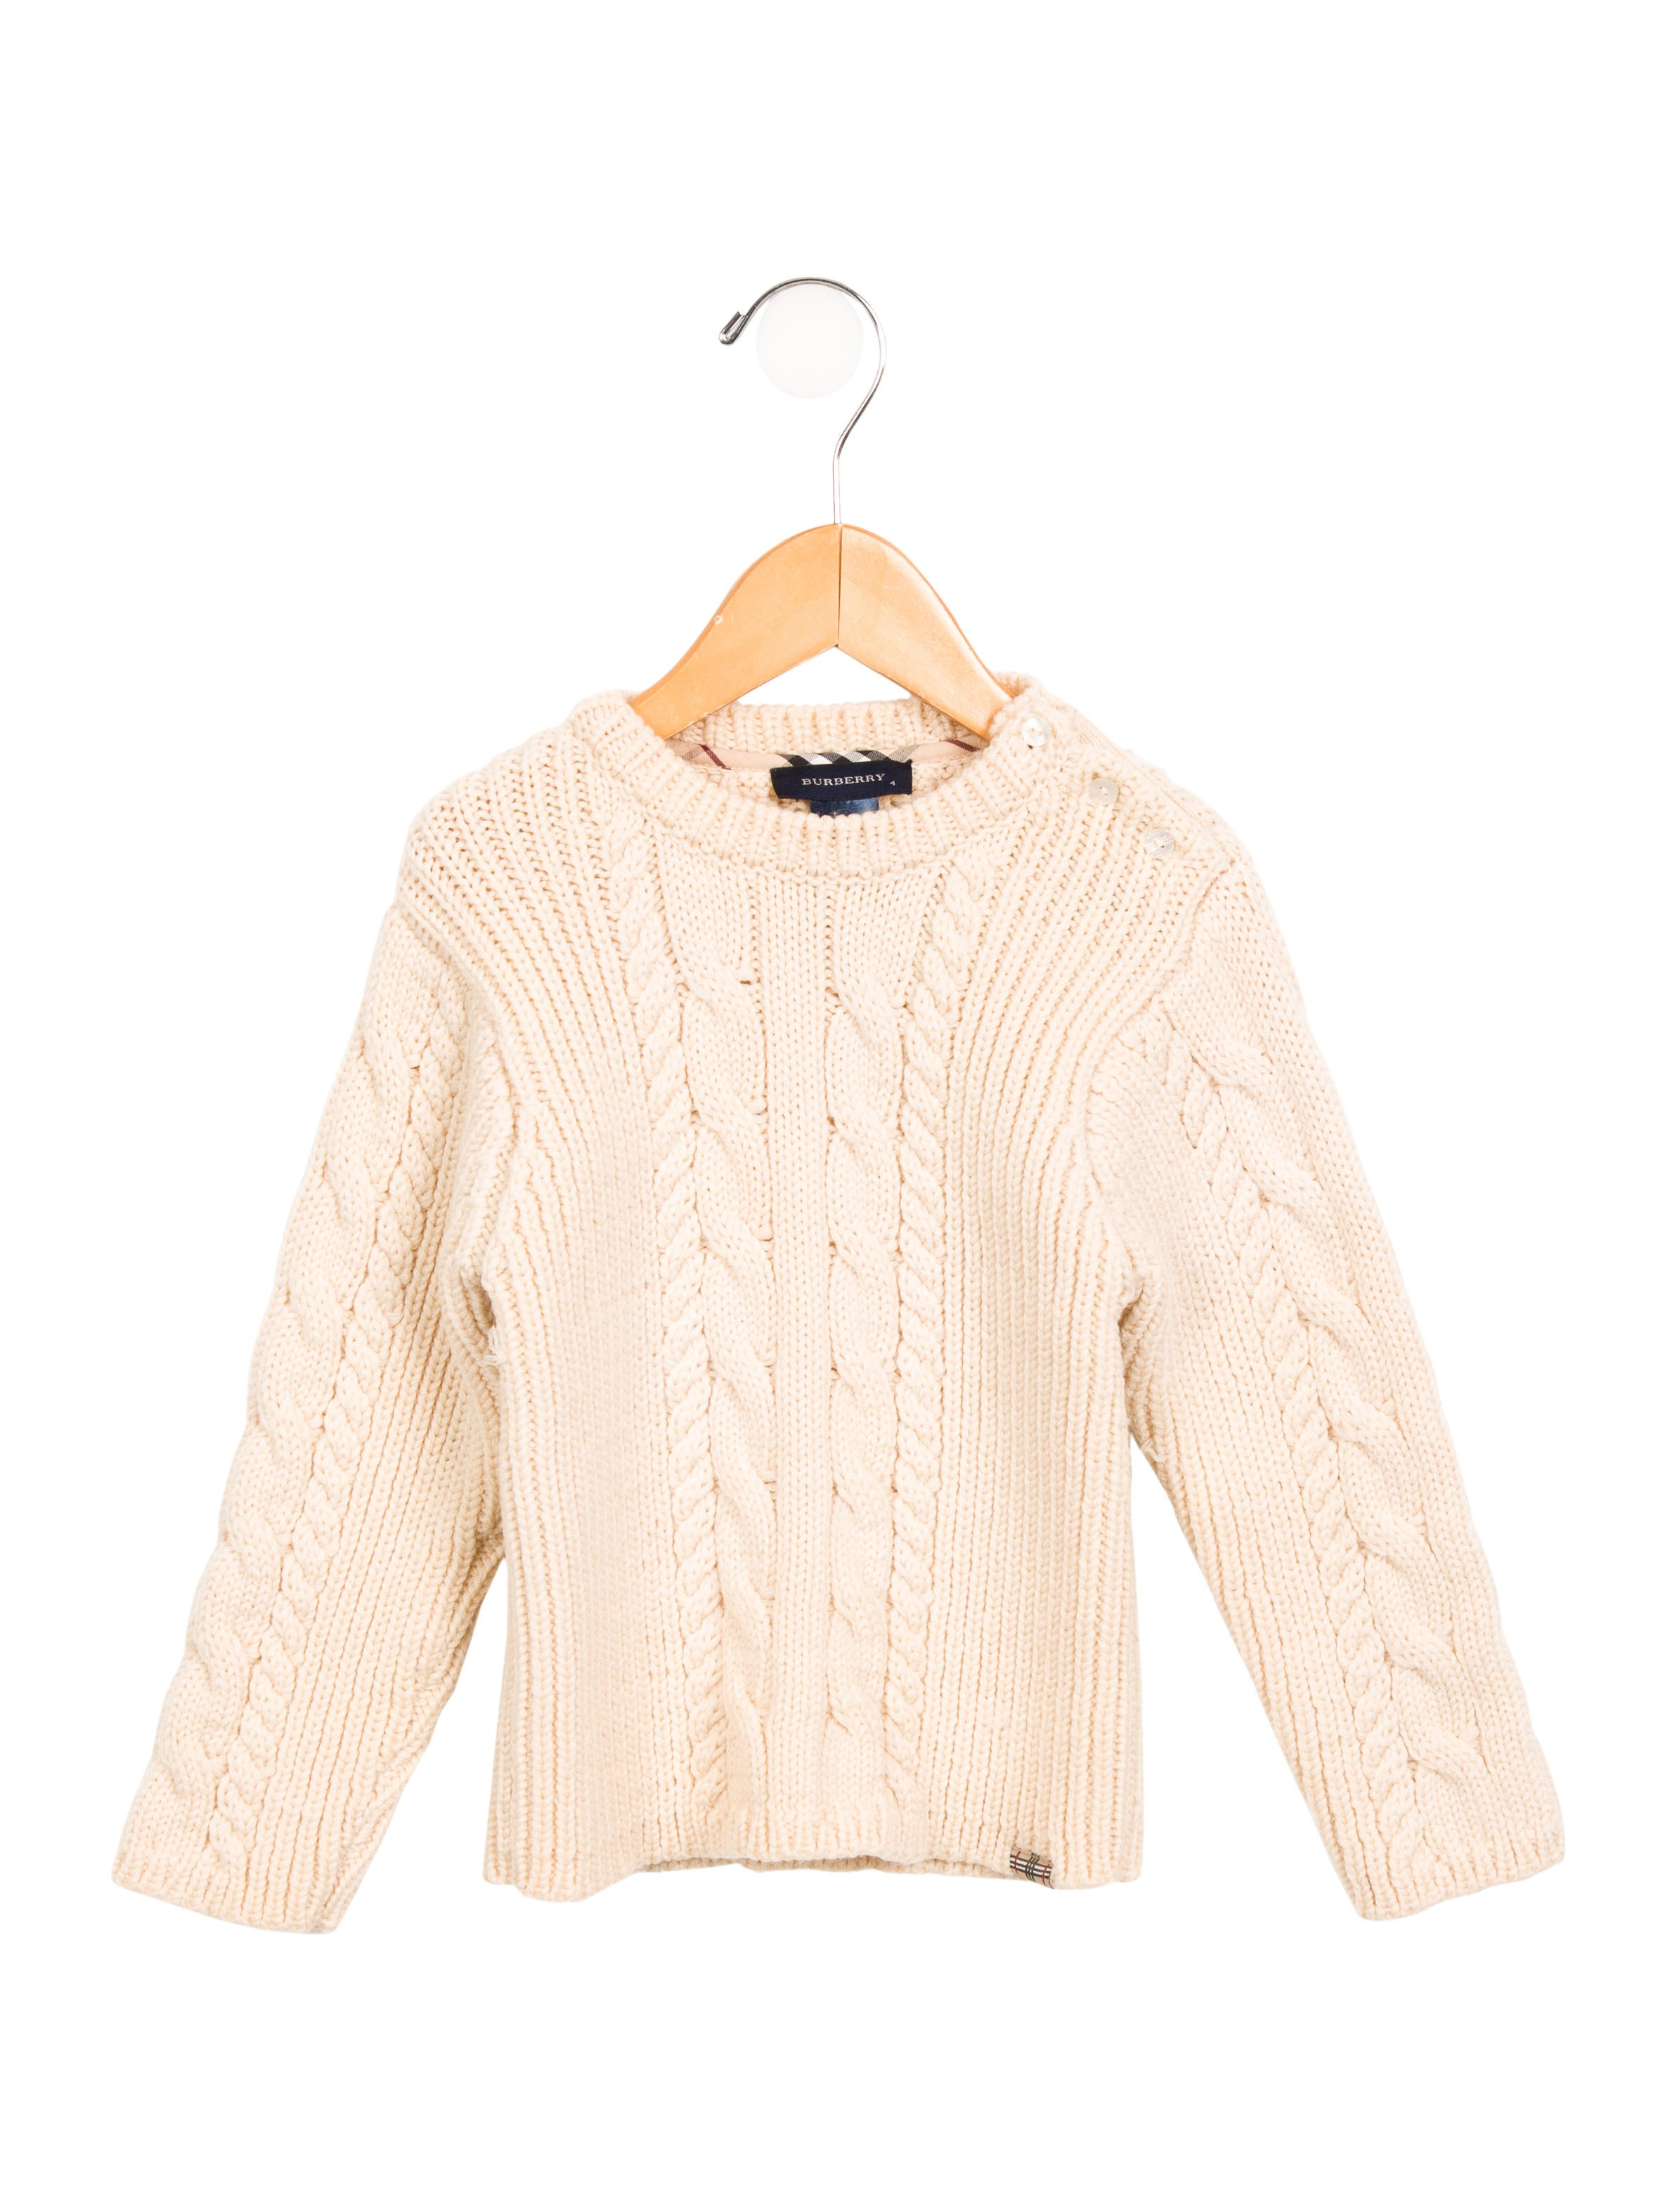 Lilax Little Girls' Cable Knit Cardigan Sweater. by Lilax. $ $ 14 50 Prime. FREE Shipping on eligible orders. Some sizes/colors are Prime eligible. 5 out of 5 stars See Details. 2% off purchase of 2 items See Details. Product Features Cable knit long sleeve cardigan is perfect for over any dress.